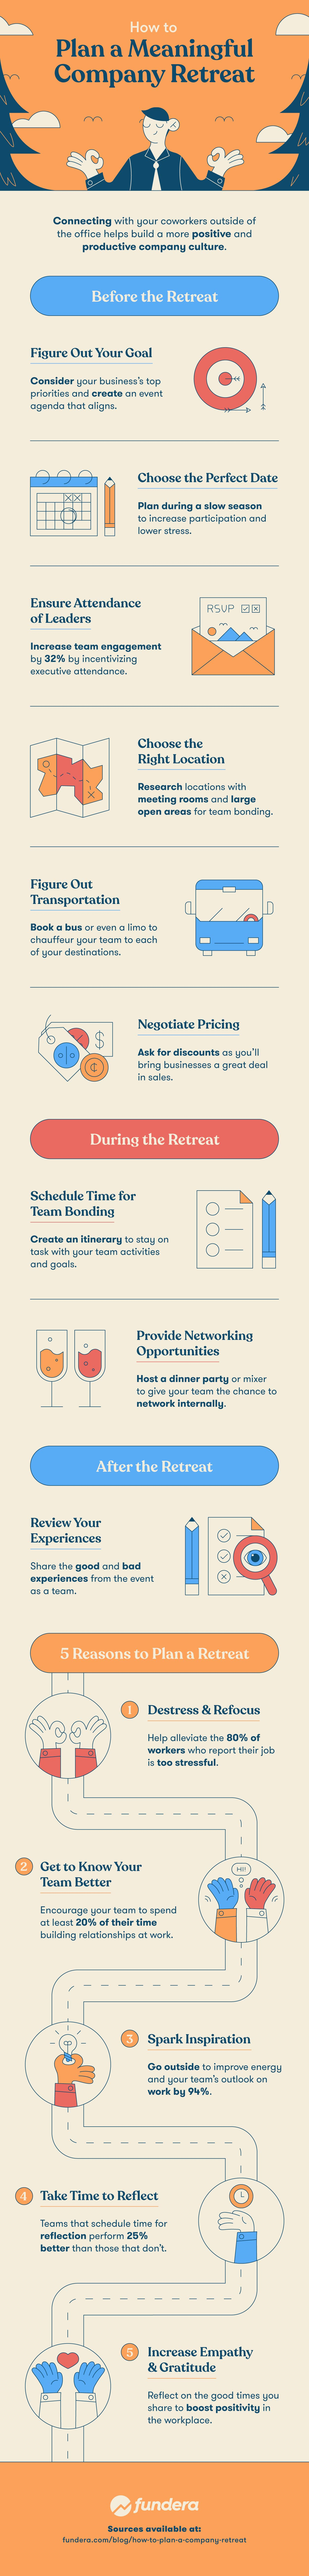 How to Plan a Company Retreat in 9 Steps